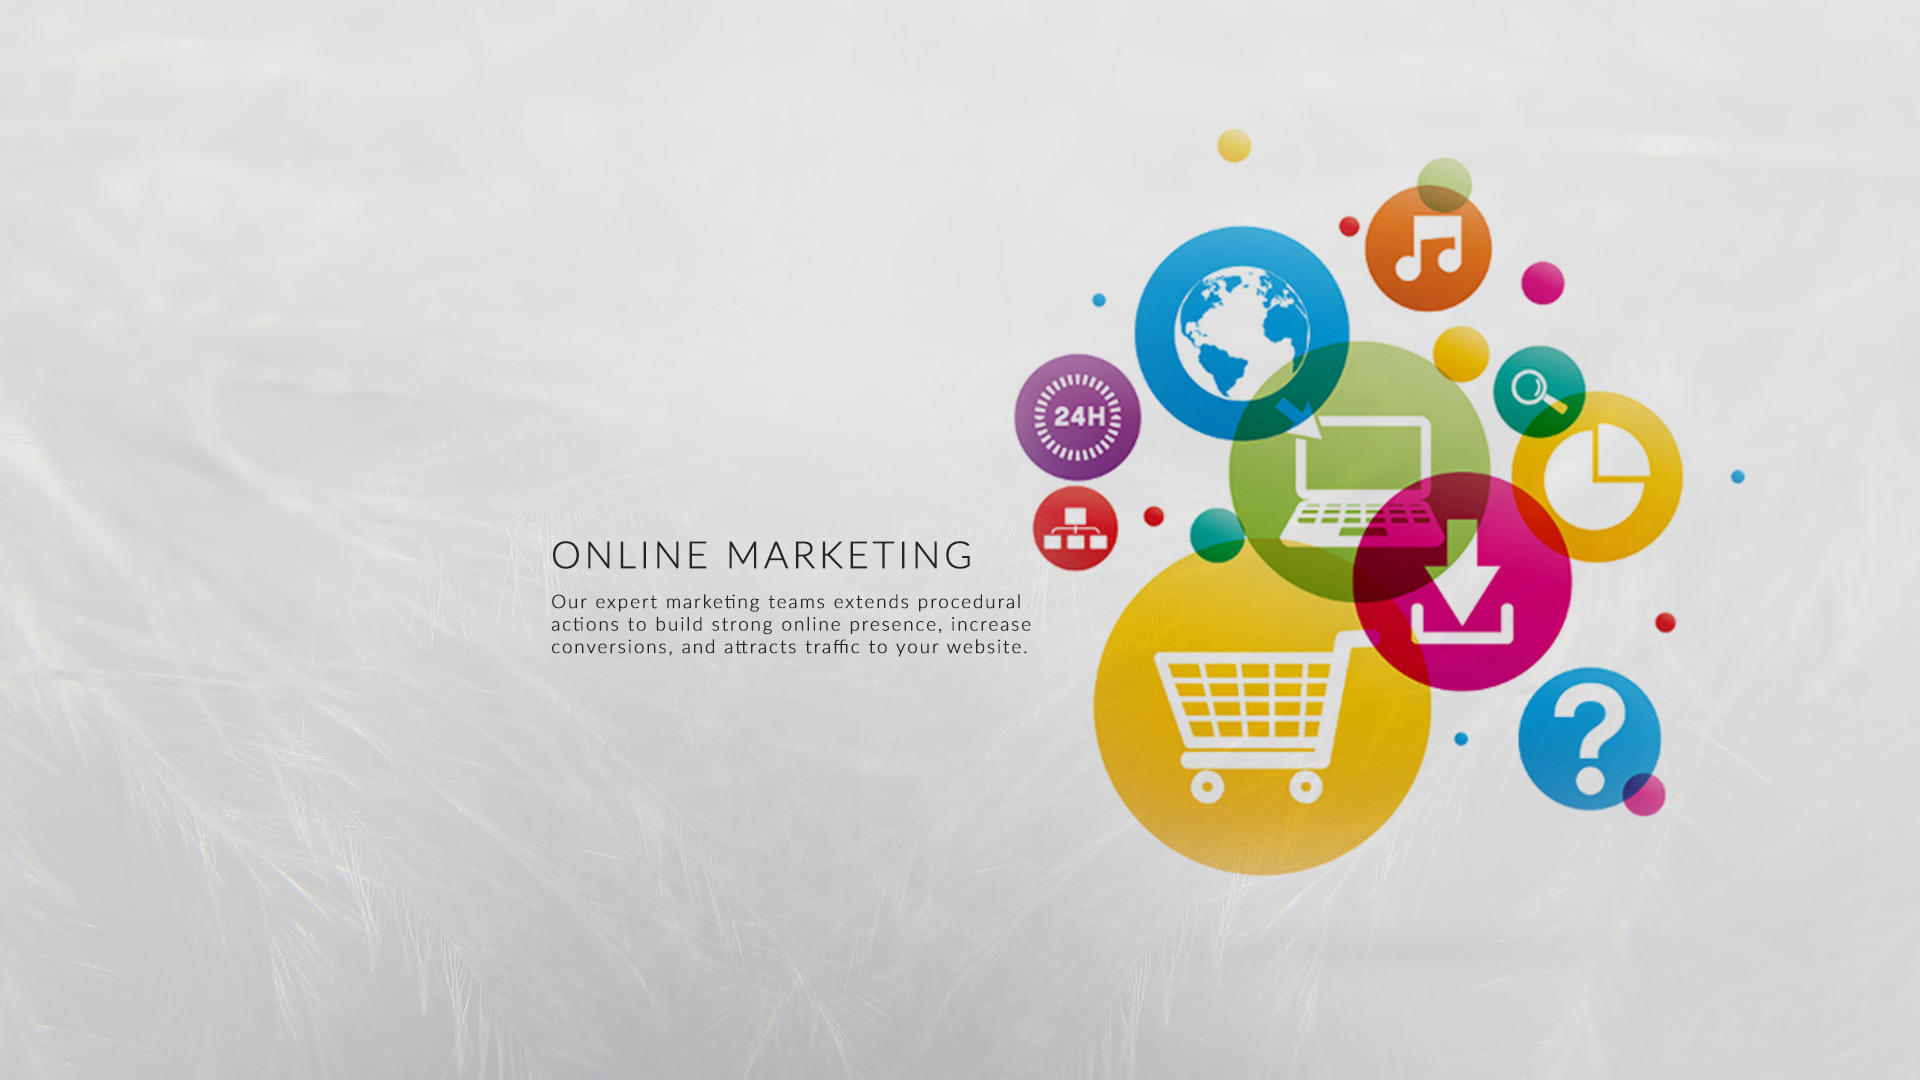 Online-Marketing-Wallpaper-20.jpg